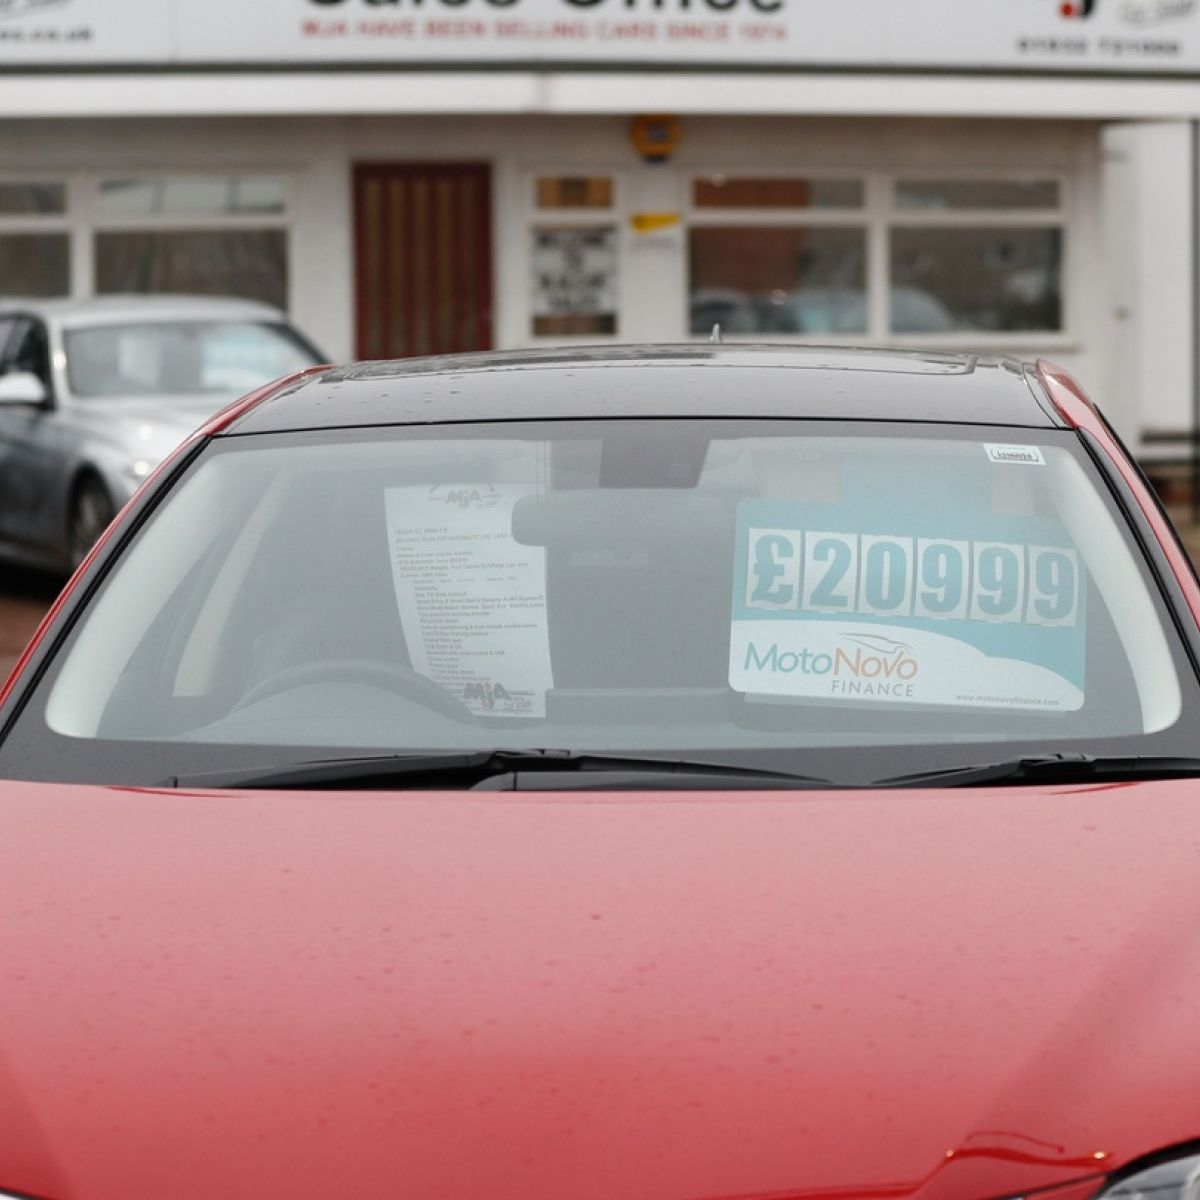 New car sales stuck in second gear as rate of used UK imports